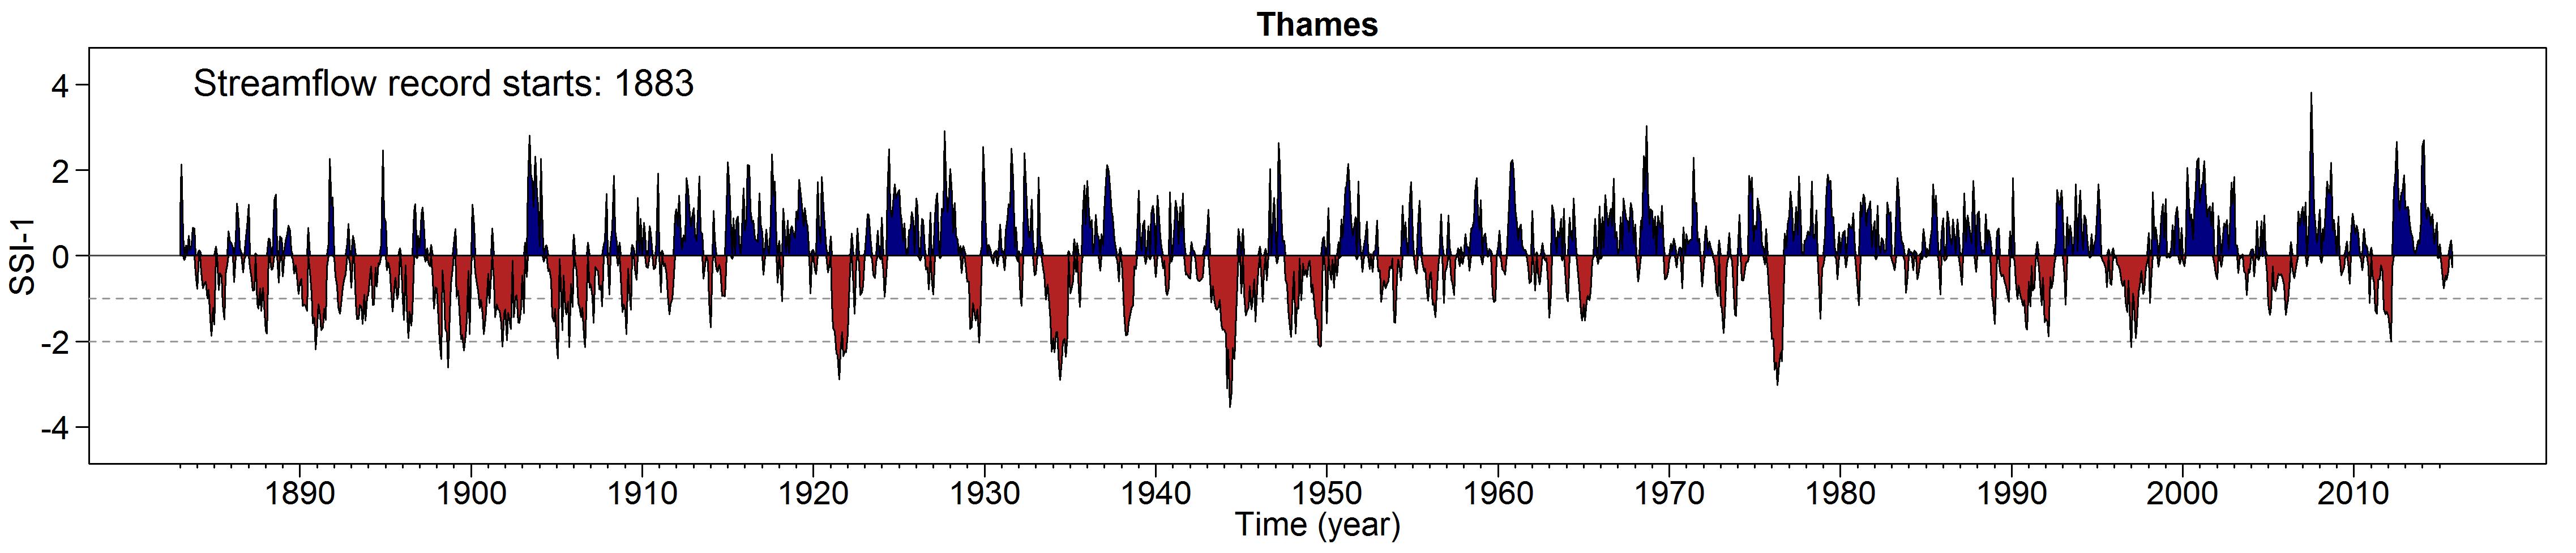 Standardised Streamflow Drought Index for River Thames